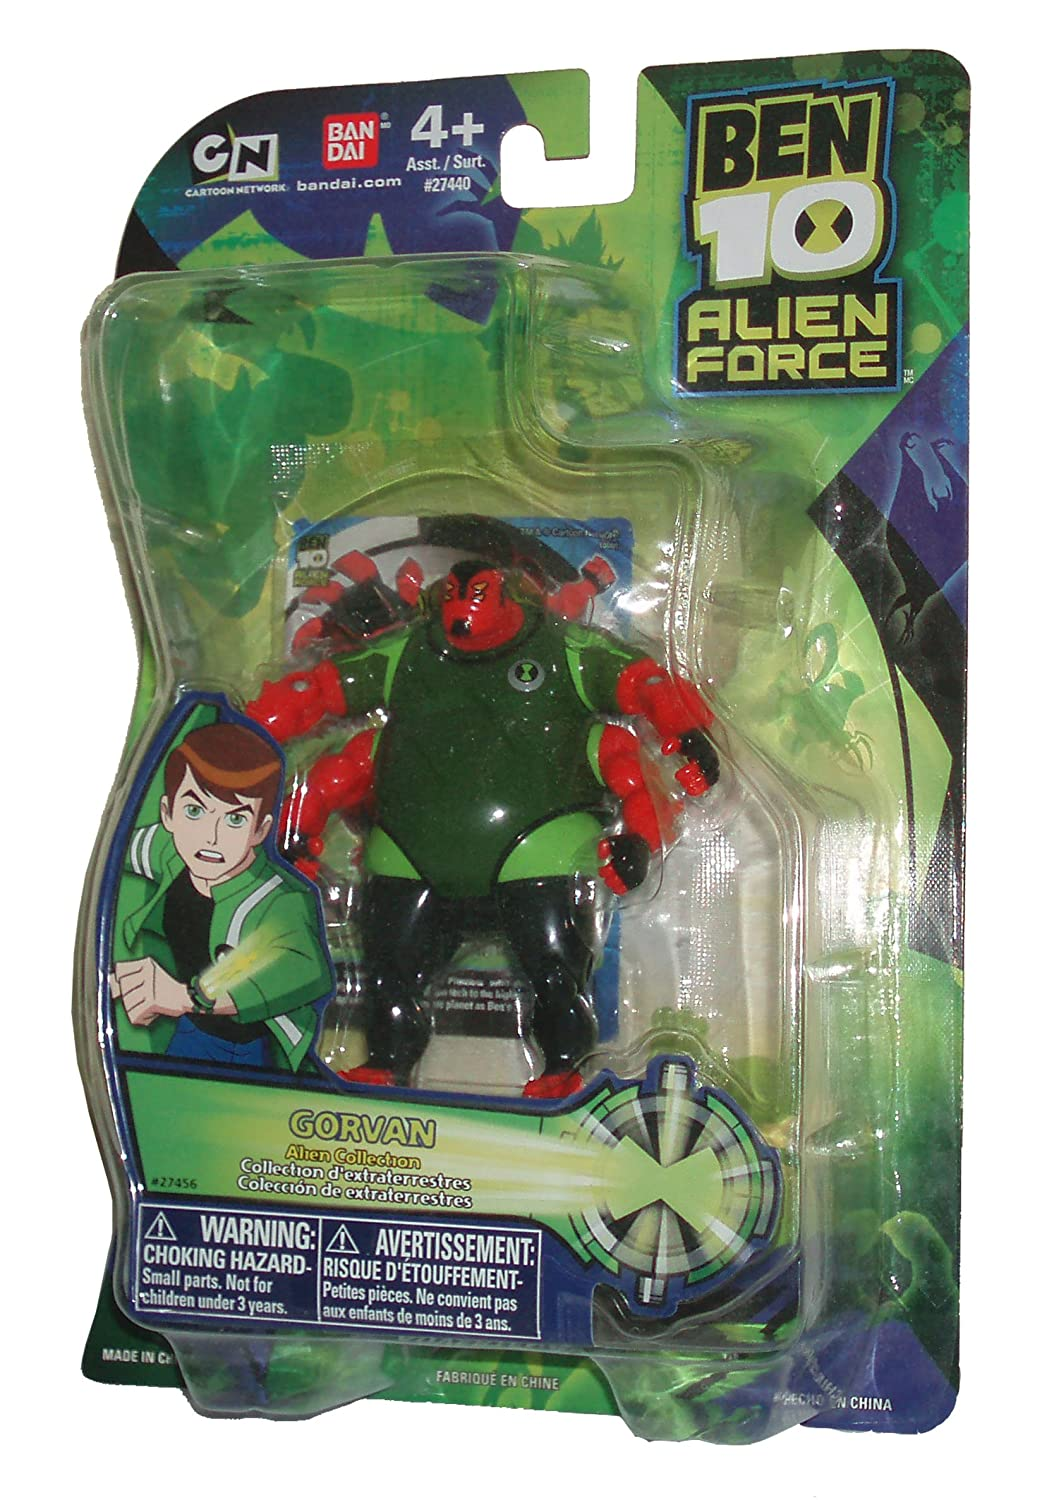 Ben 10 Alien Force Collection Series 4 Inch Tall Action Figure - Alien Collection GORVAN with Collectible Card